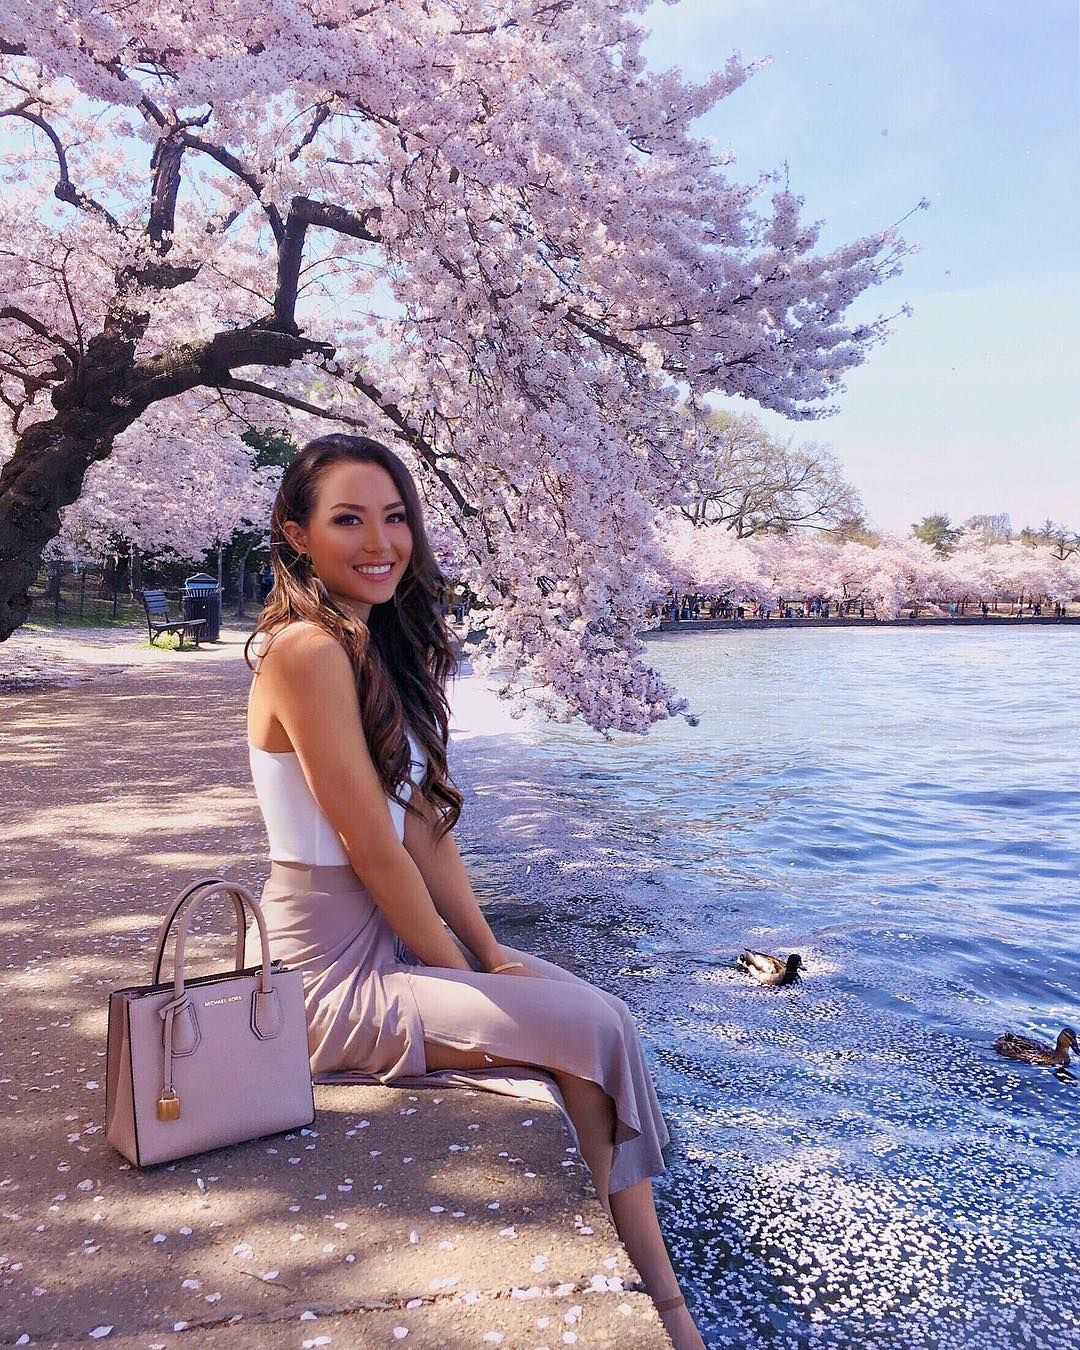 Jessica Ricks On Instagram The Cherry Blossoms Are In Full Bloom Right Now Tb To Last Year In Dc Who Went This Jessica Ricks American Style Instagram